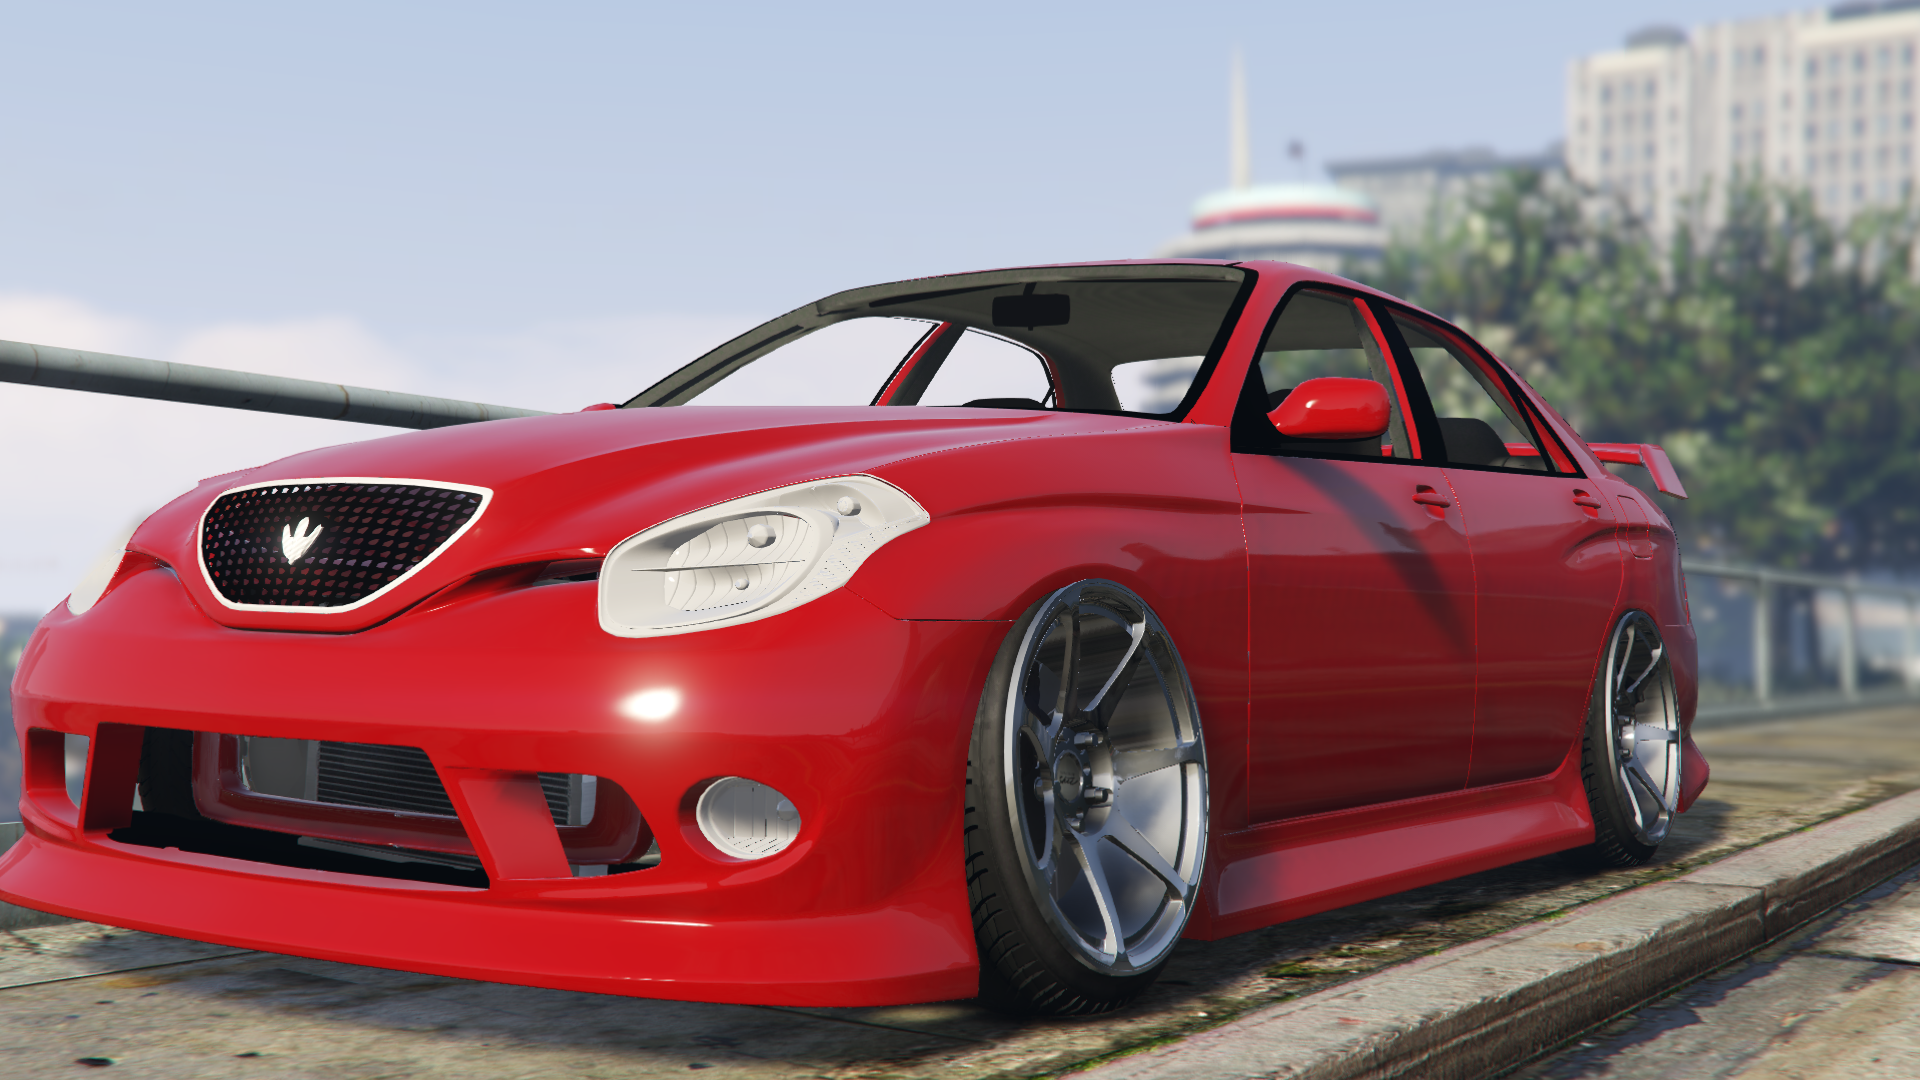 Toyota Verossa Jzx110 Add On Tuning Gta5 Mods Com